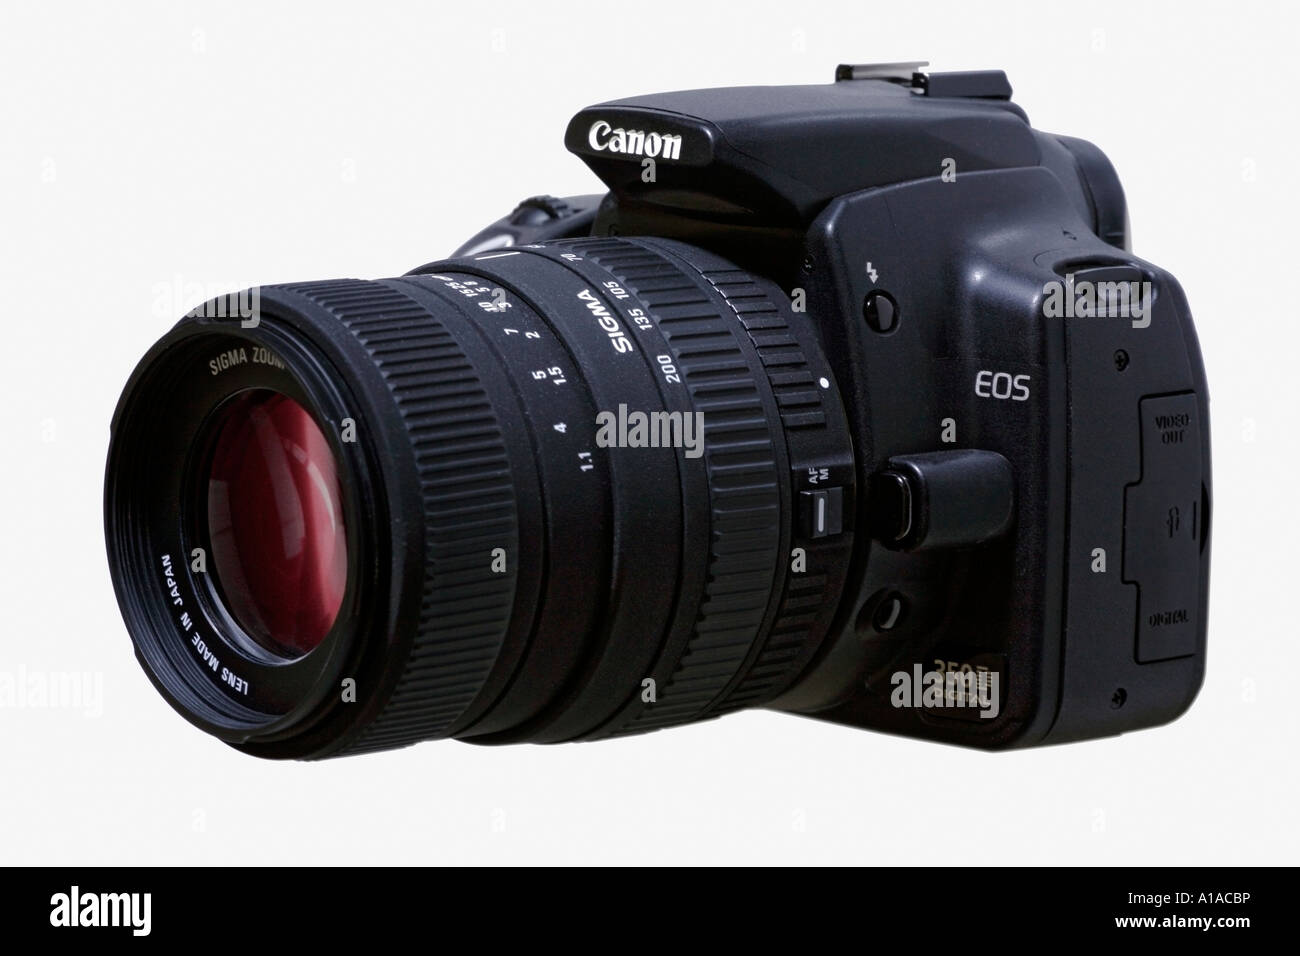 Digital camera Canon Eos 350 D with Sigma zoom on white background Stock Photo